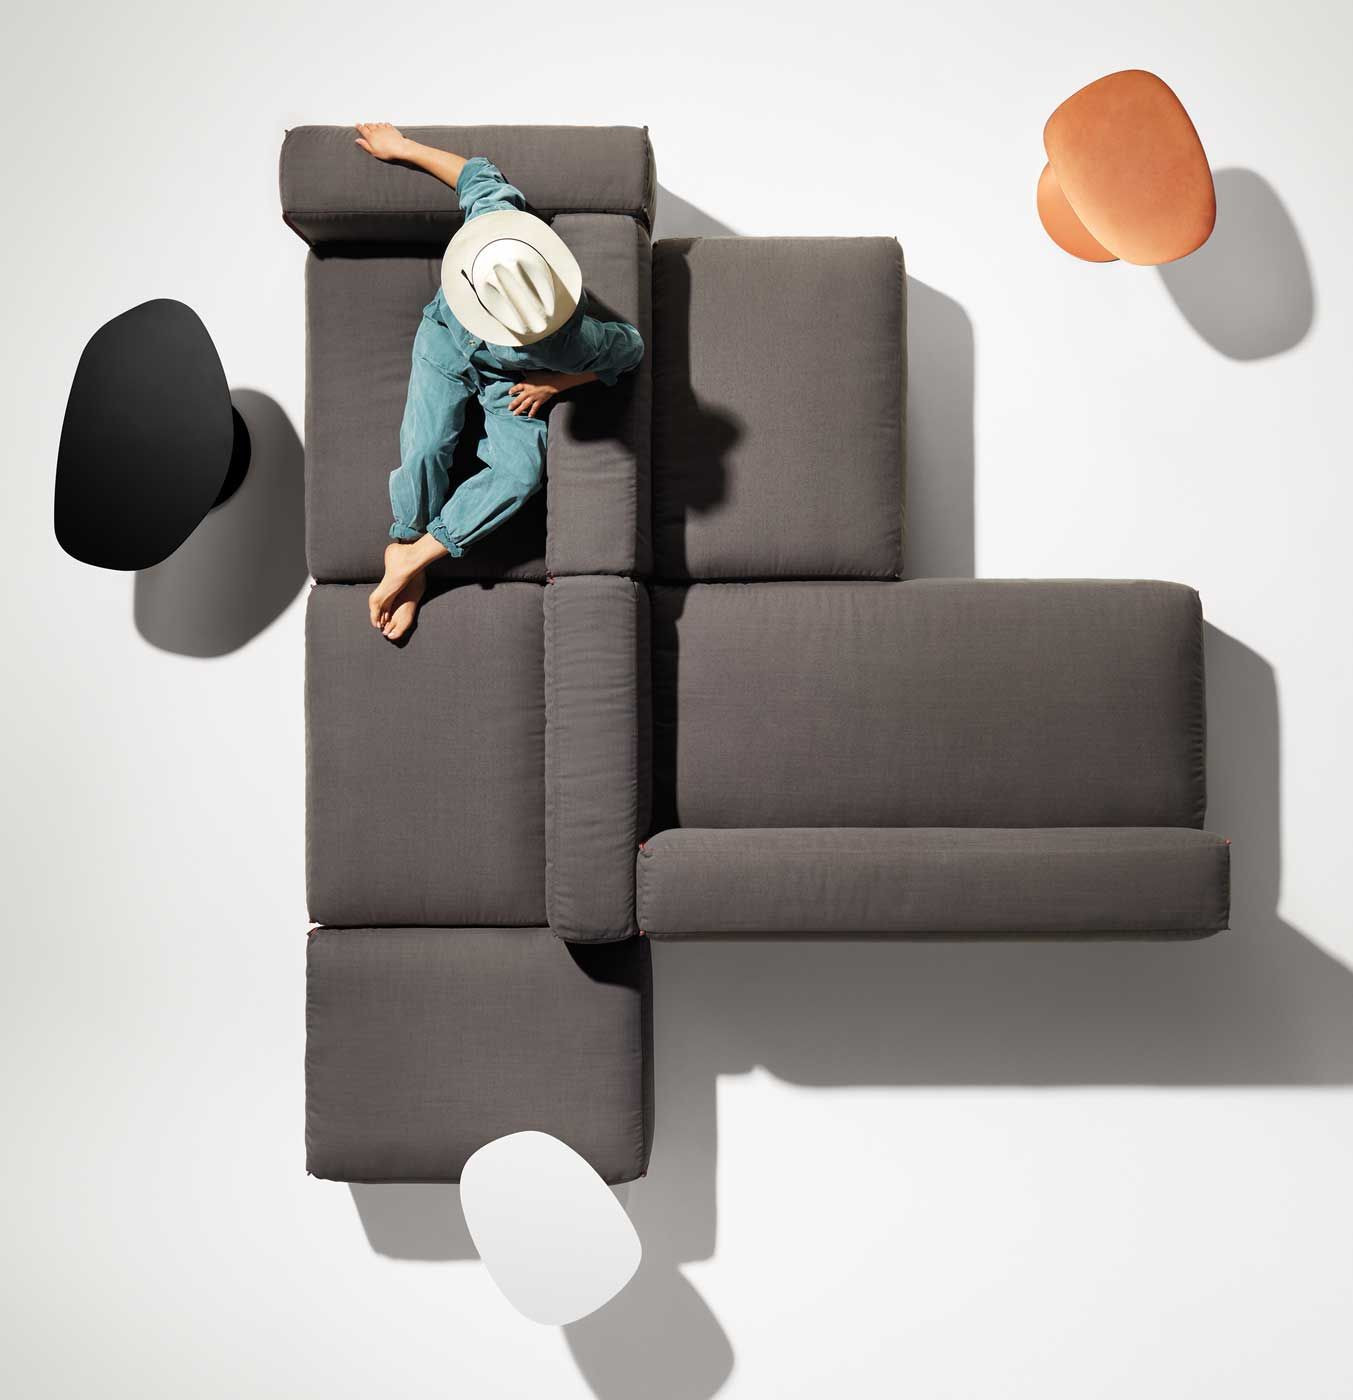 Shop the Cleon Collection of modular sectional